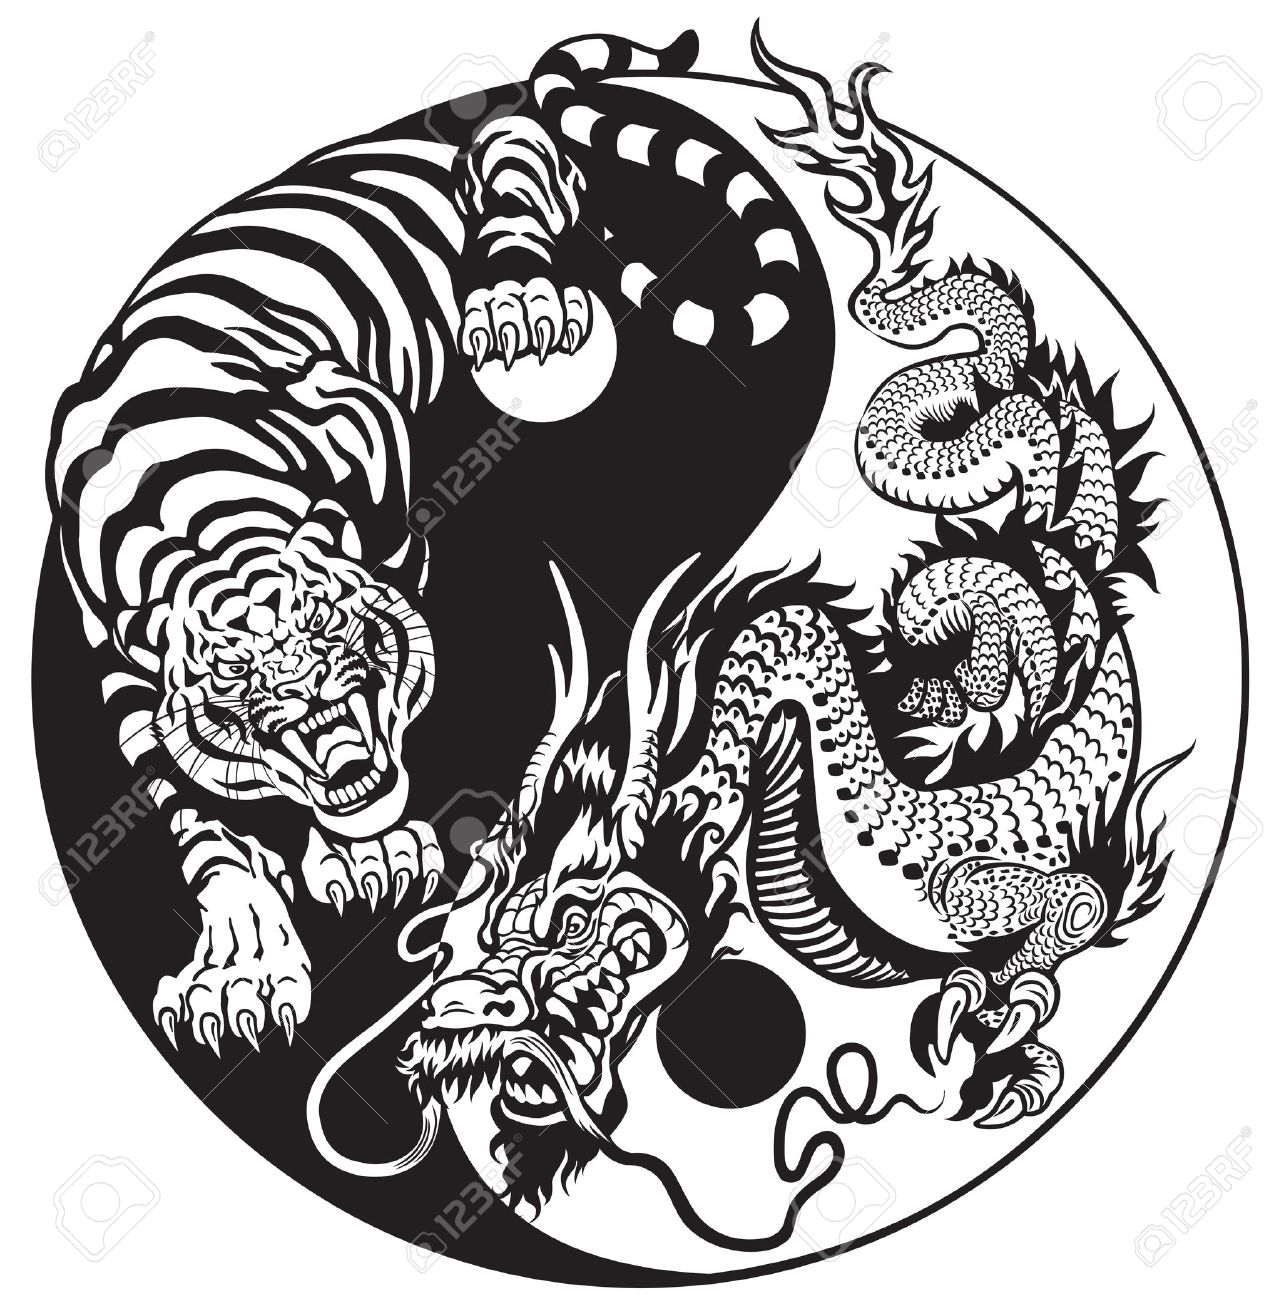 Dragon And Tiger Yin Yang Symbol Of Harmony And Balance Black And